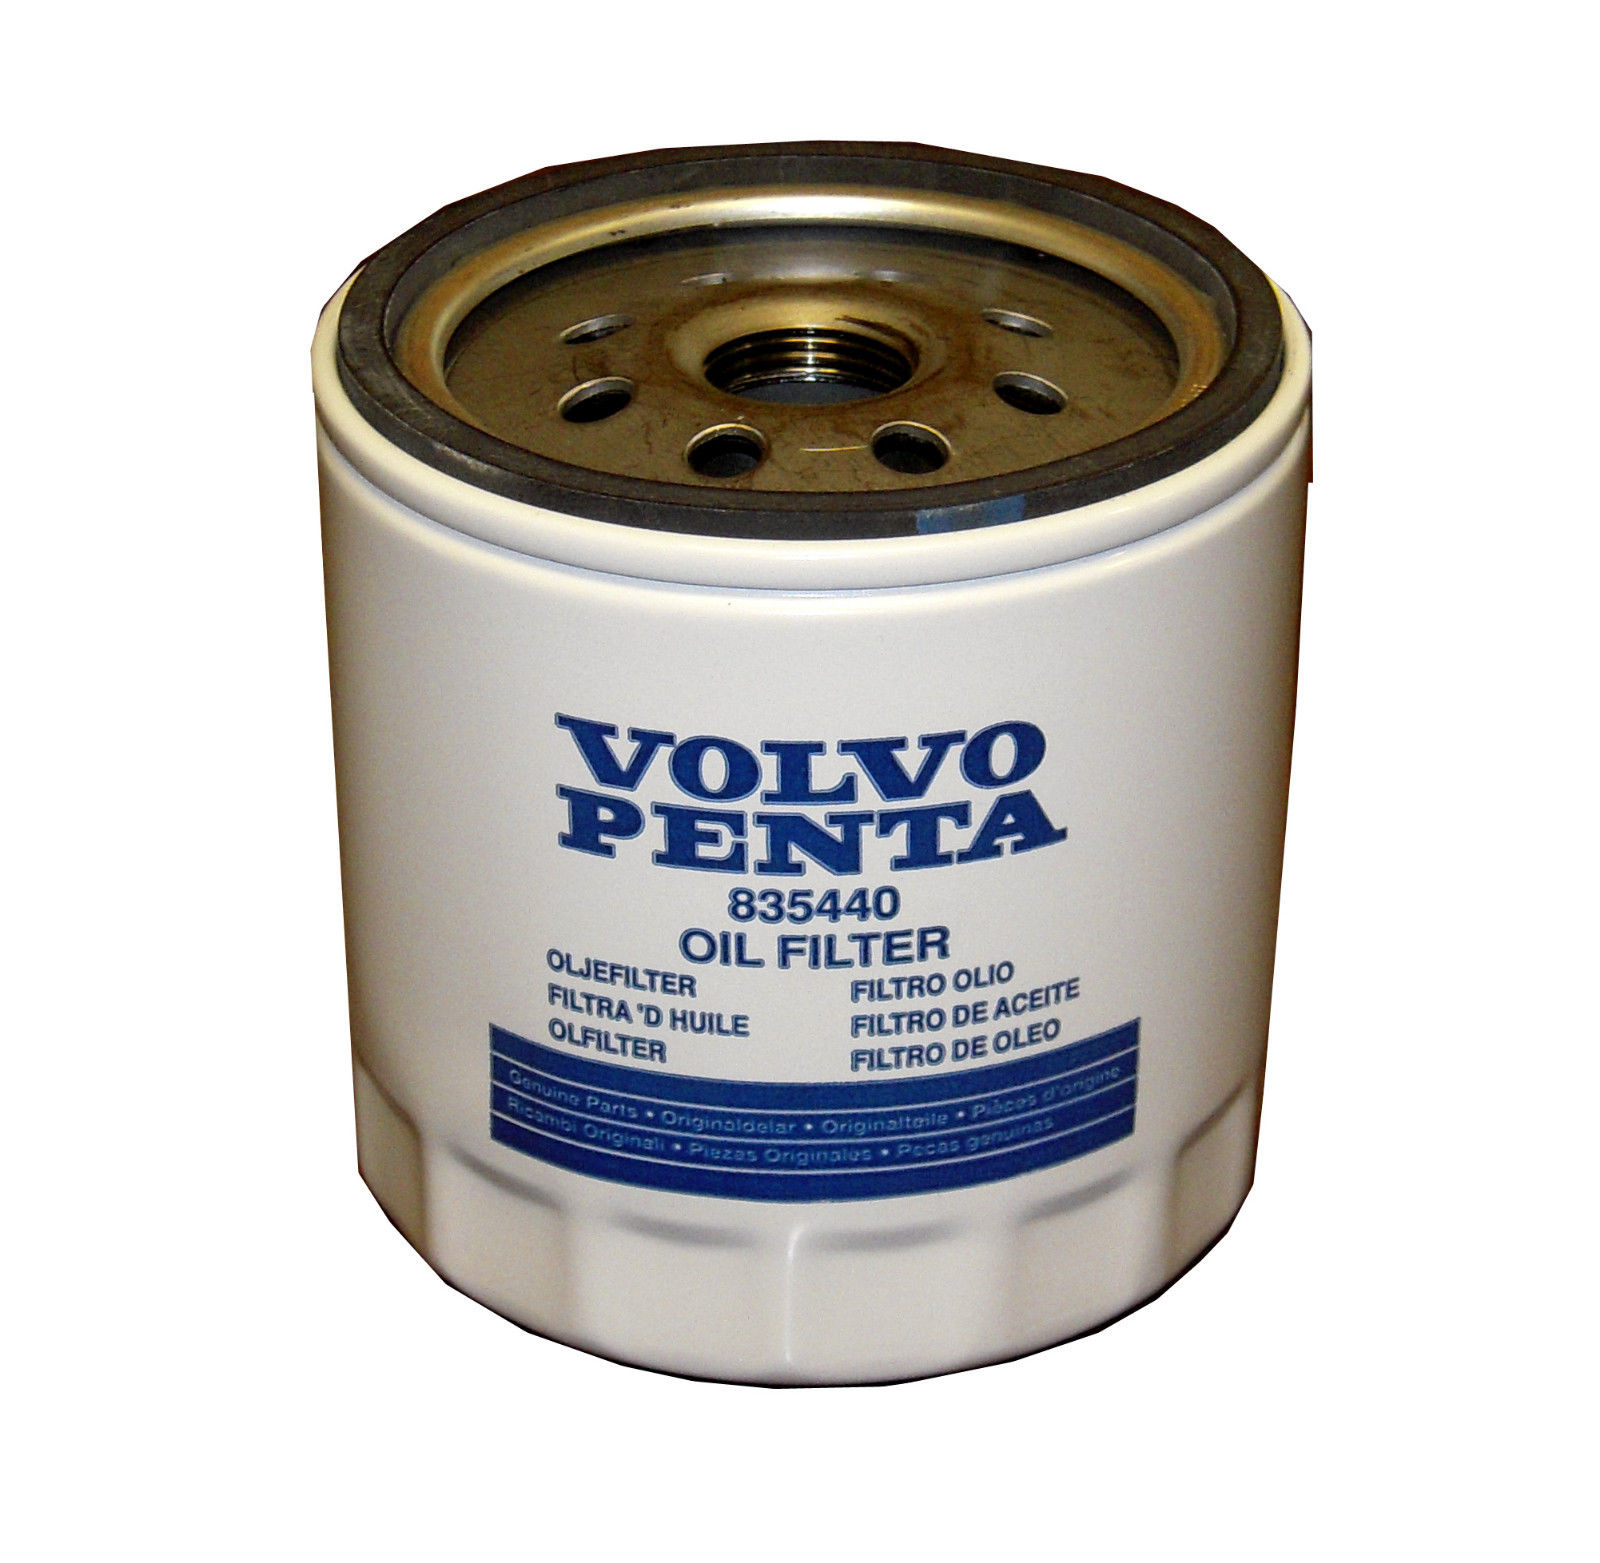 Oem Volvo Penta Oil Filter In Line 4 Cylinder Small Block V8 Gm Boat Fuel Location 835440